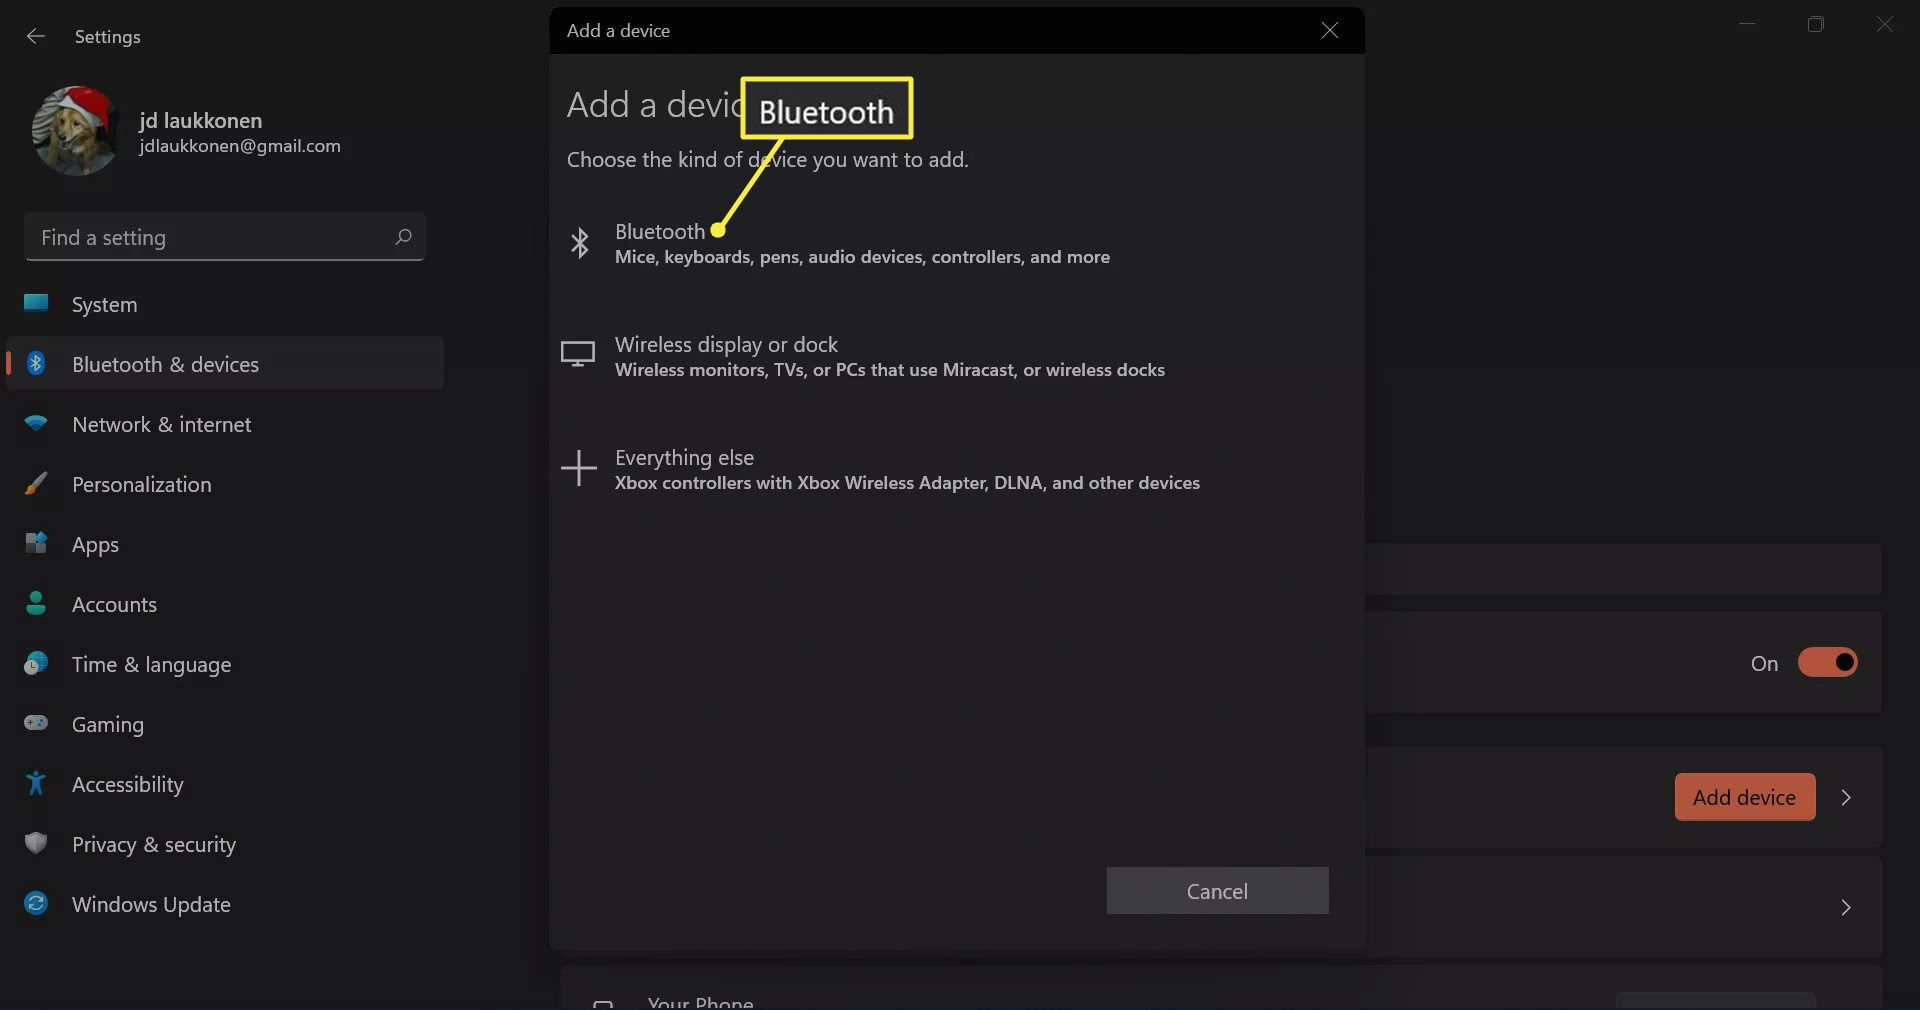 Bluetooth highlighted in the add a device menu in Windows 11